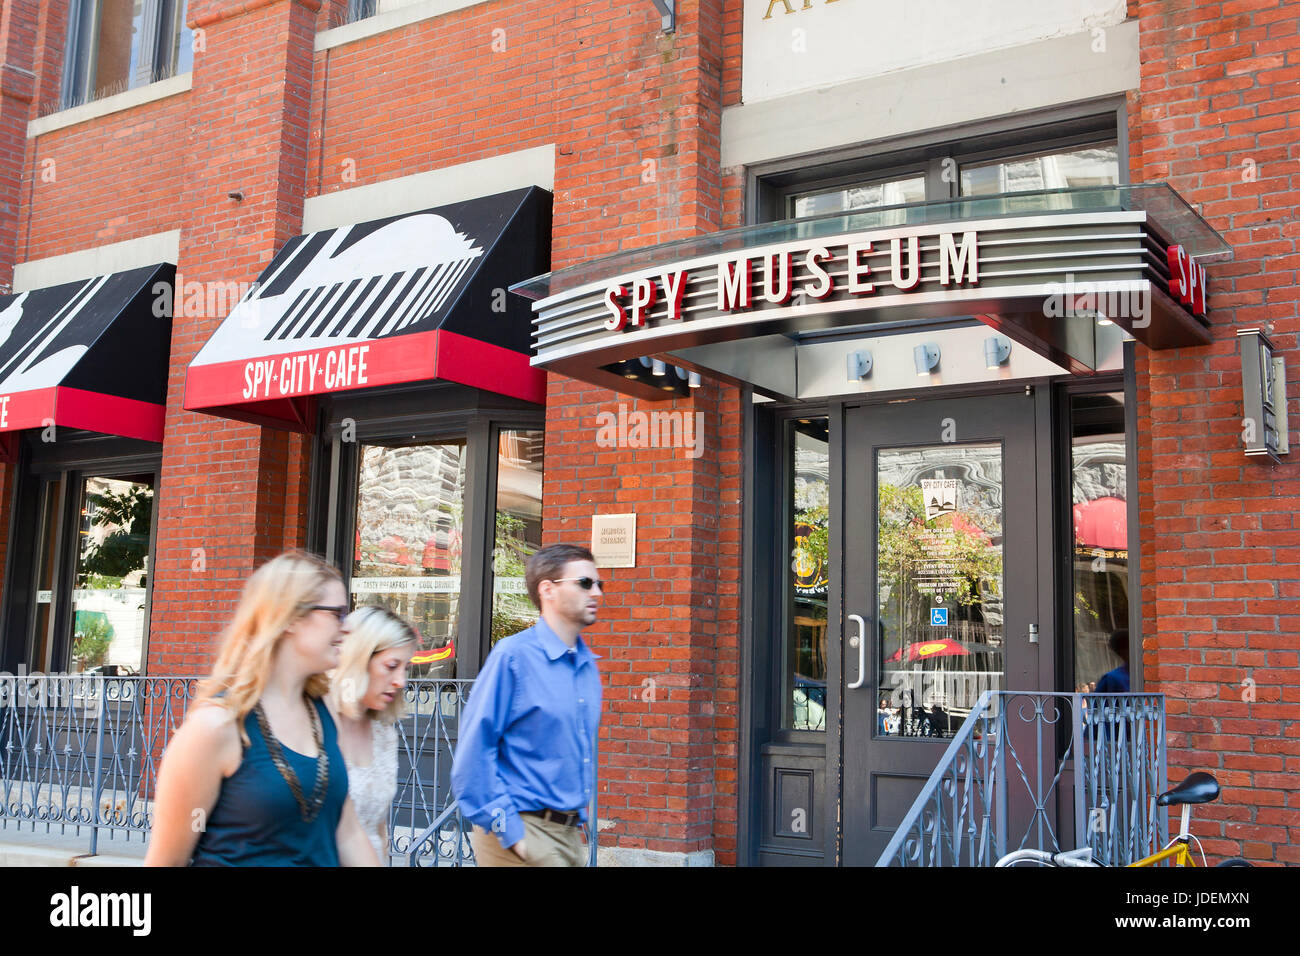 International Spy Museum side entrance - Washington, DC USA - Stock Image